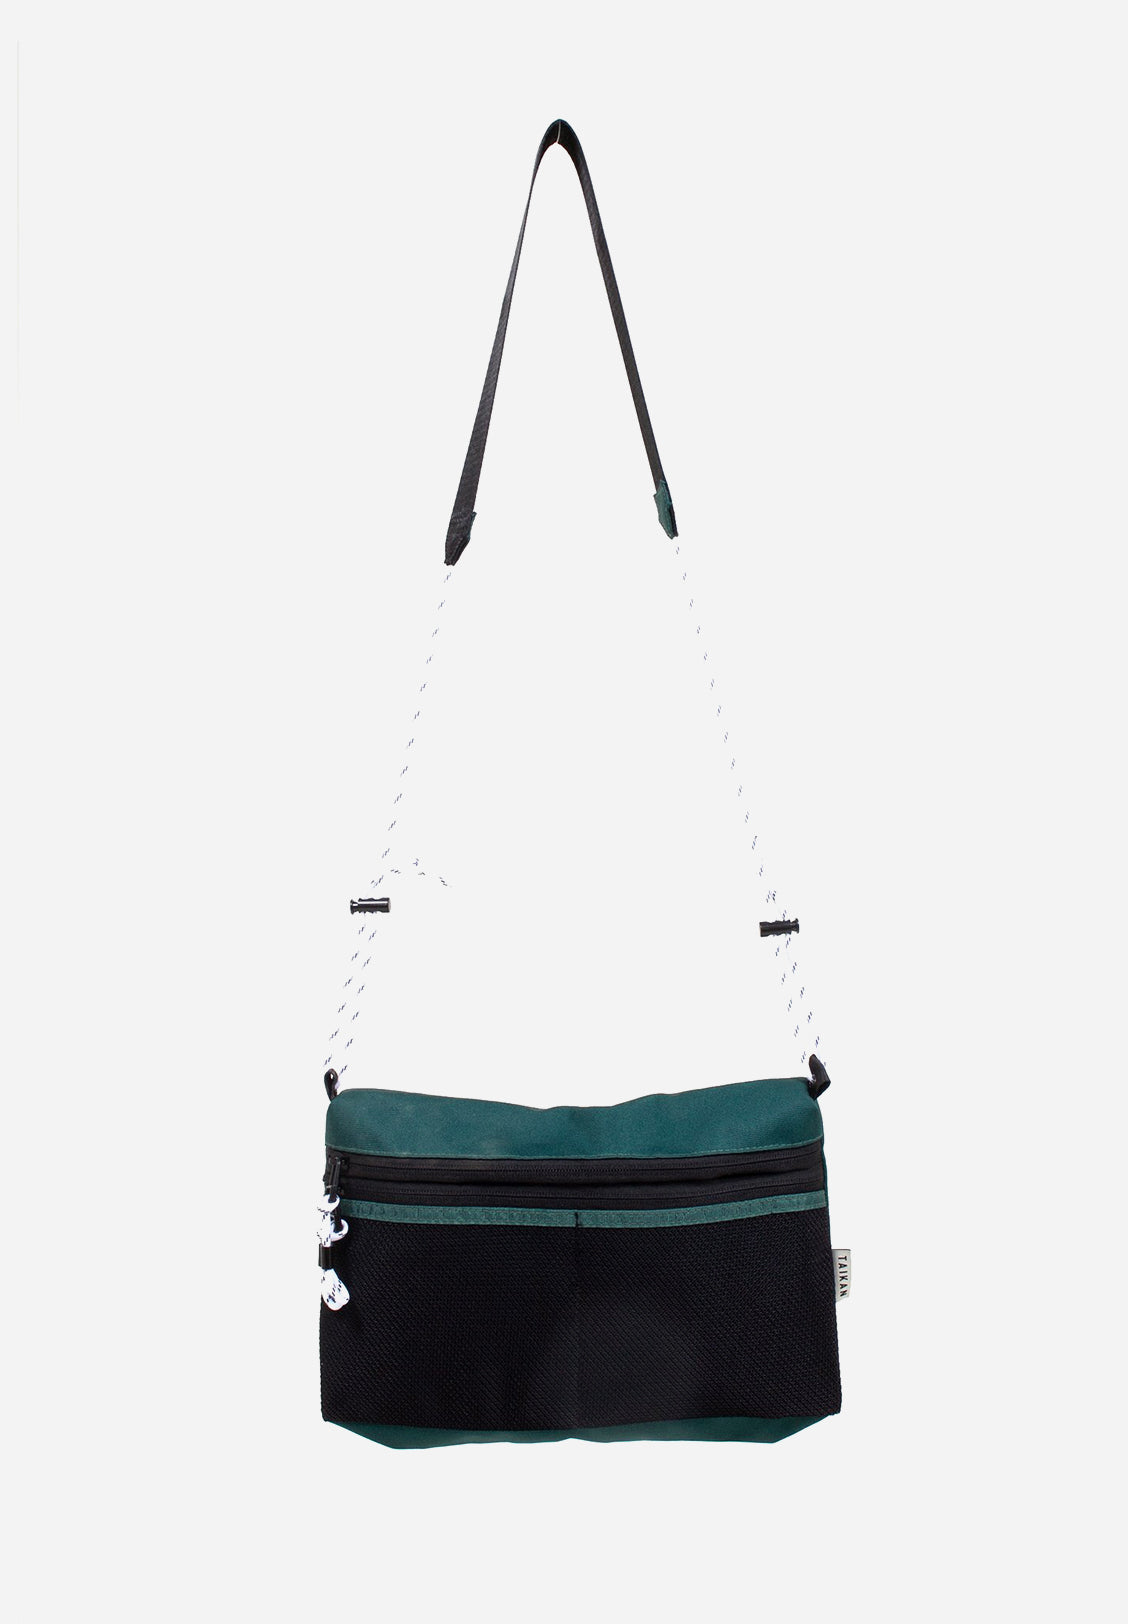 TAIKAN - SACOCHE BAG LARGE, GREEN